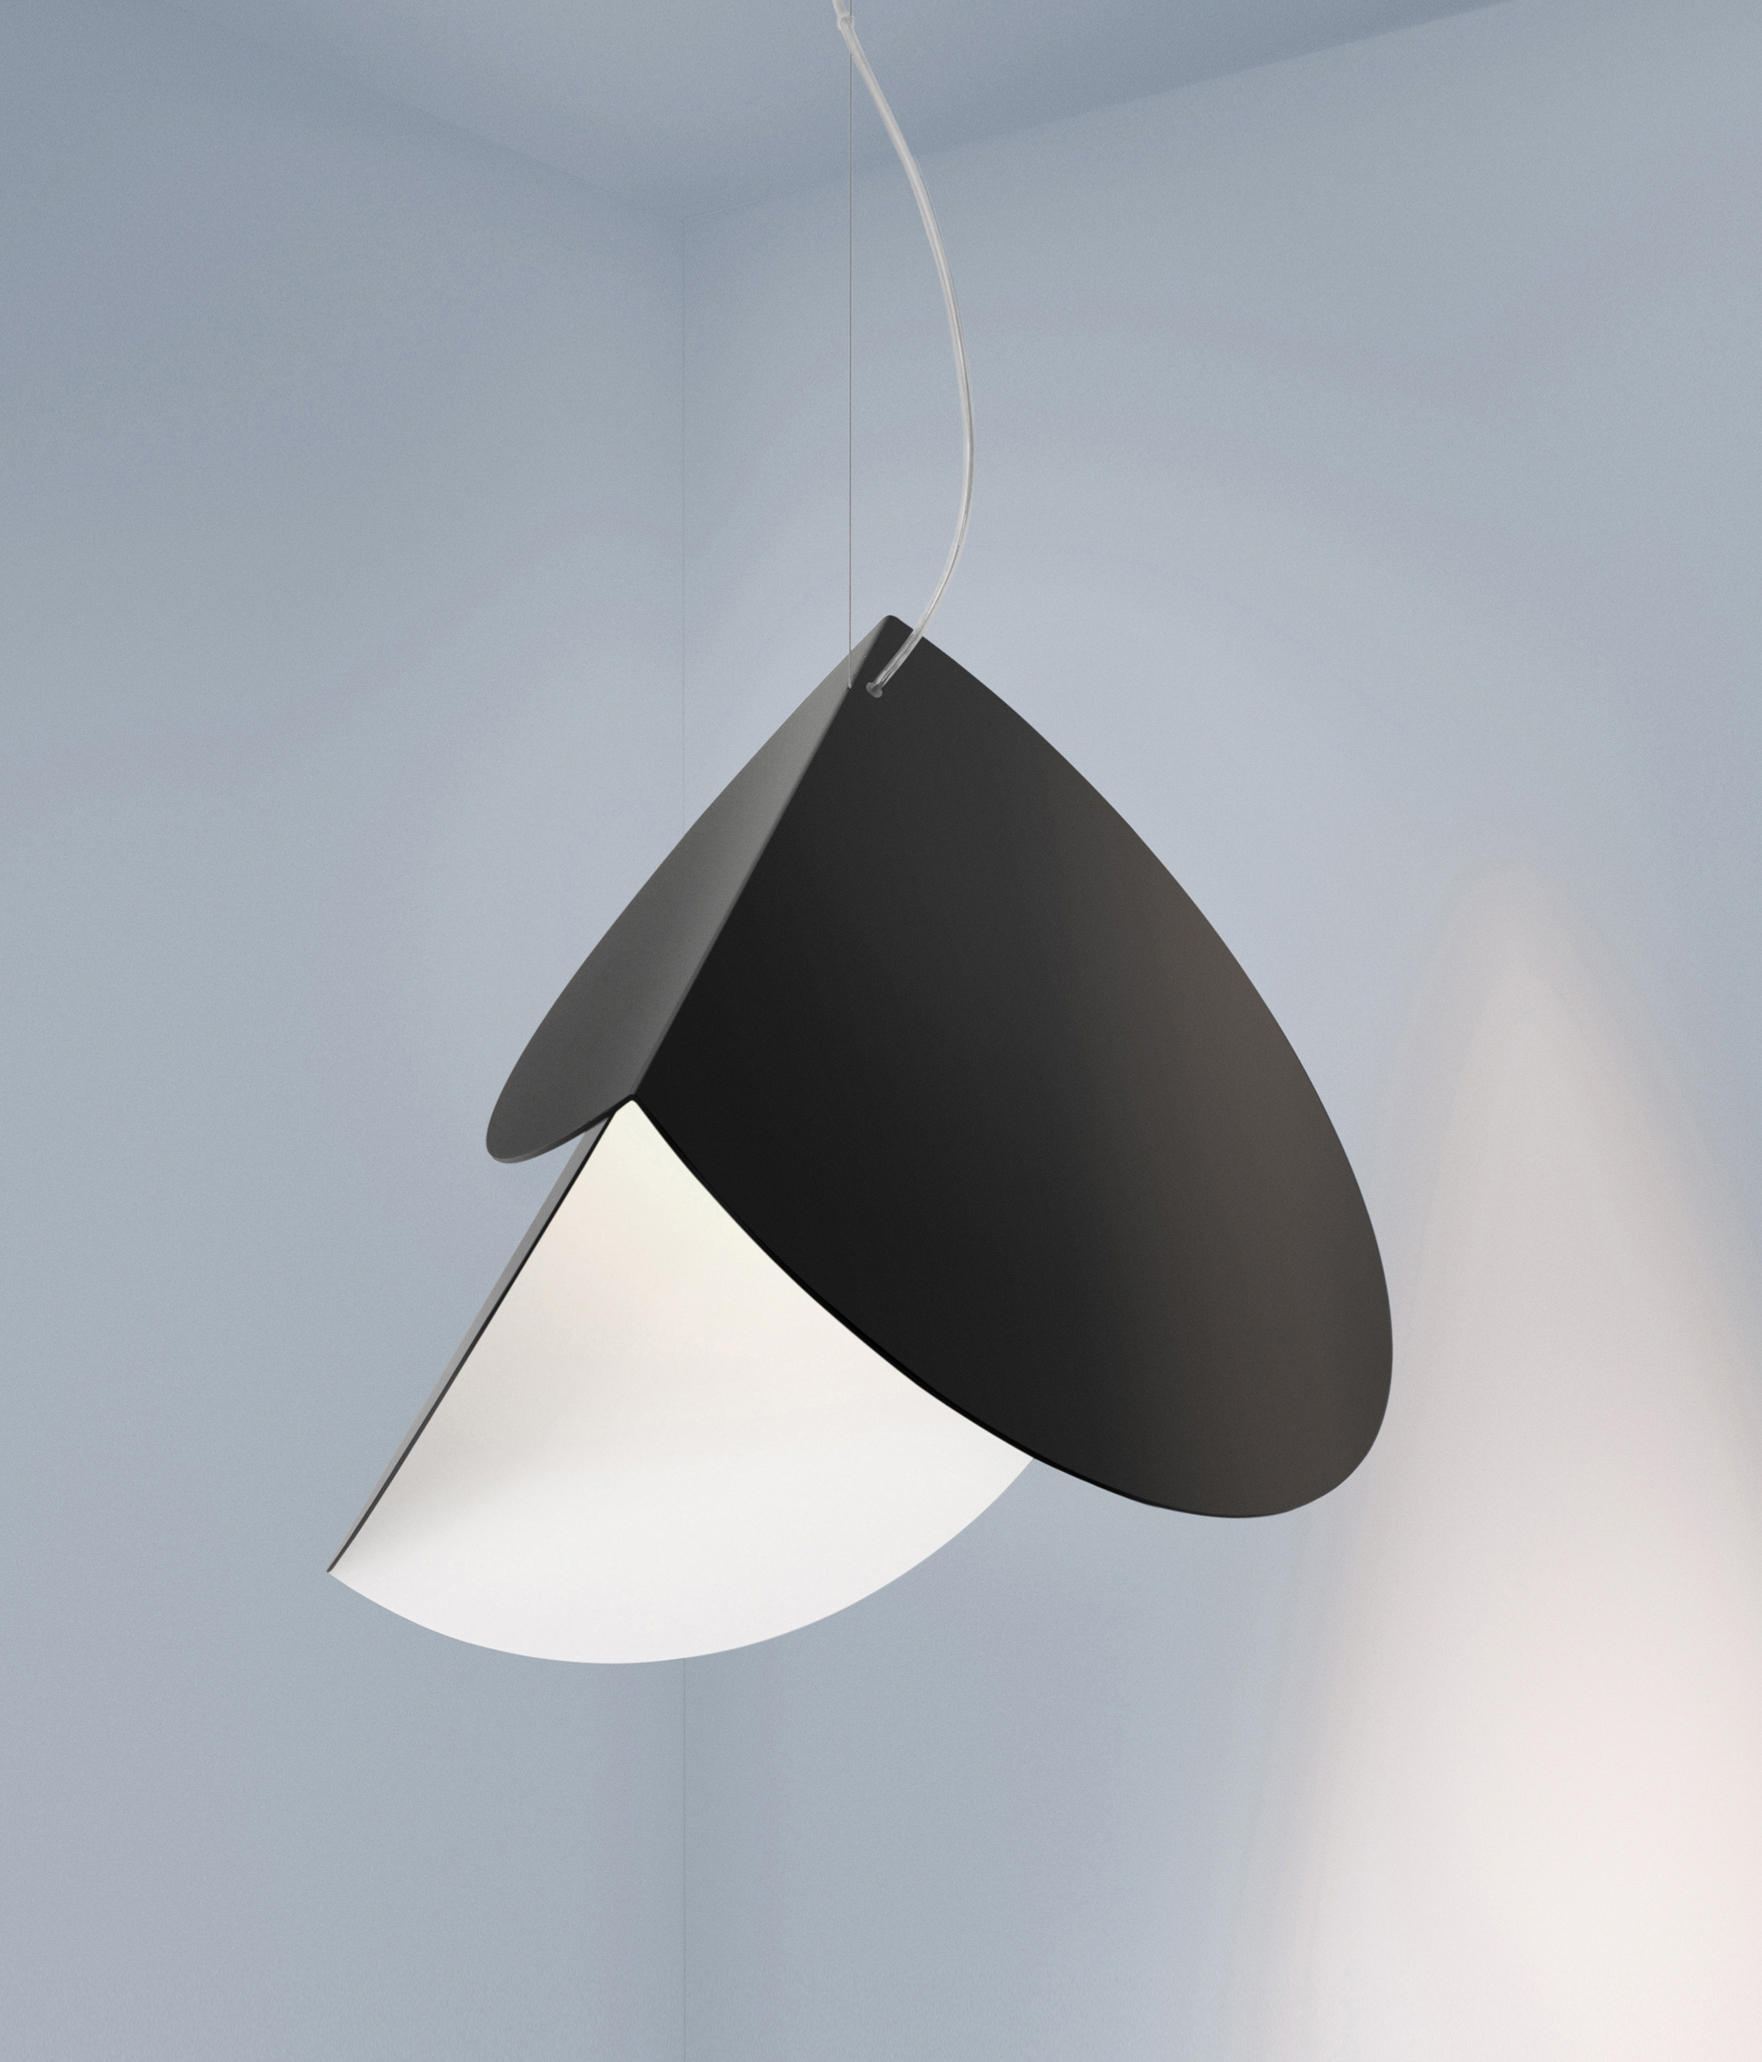 CHORDS - Suspended lights from Pallucco | Architonic